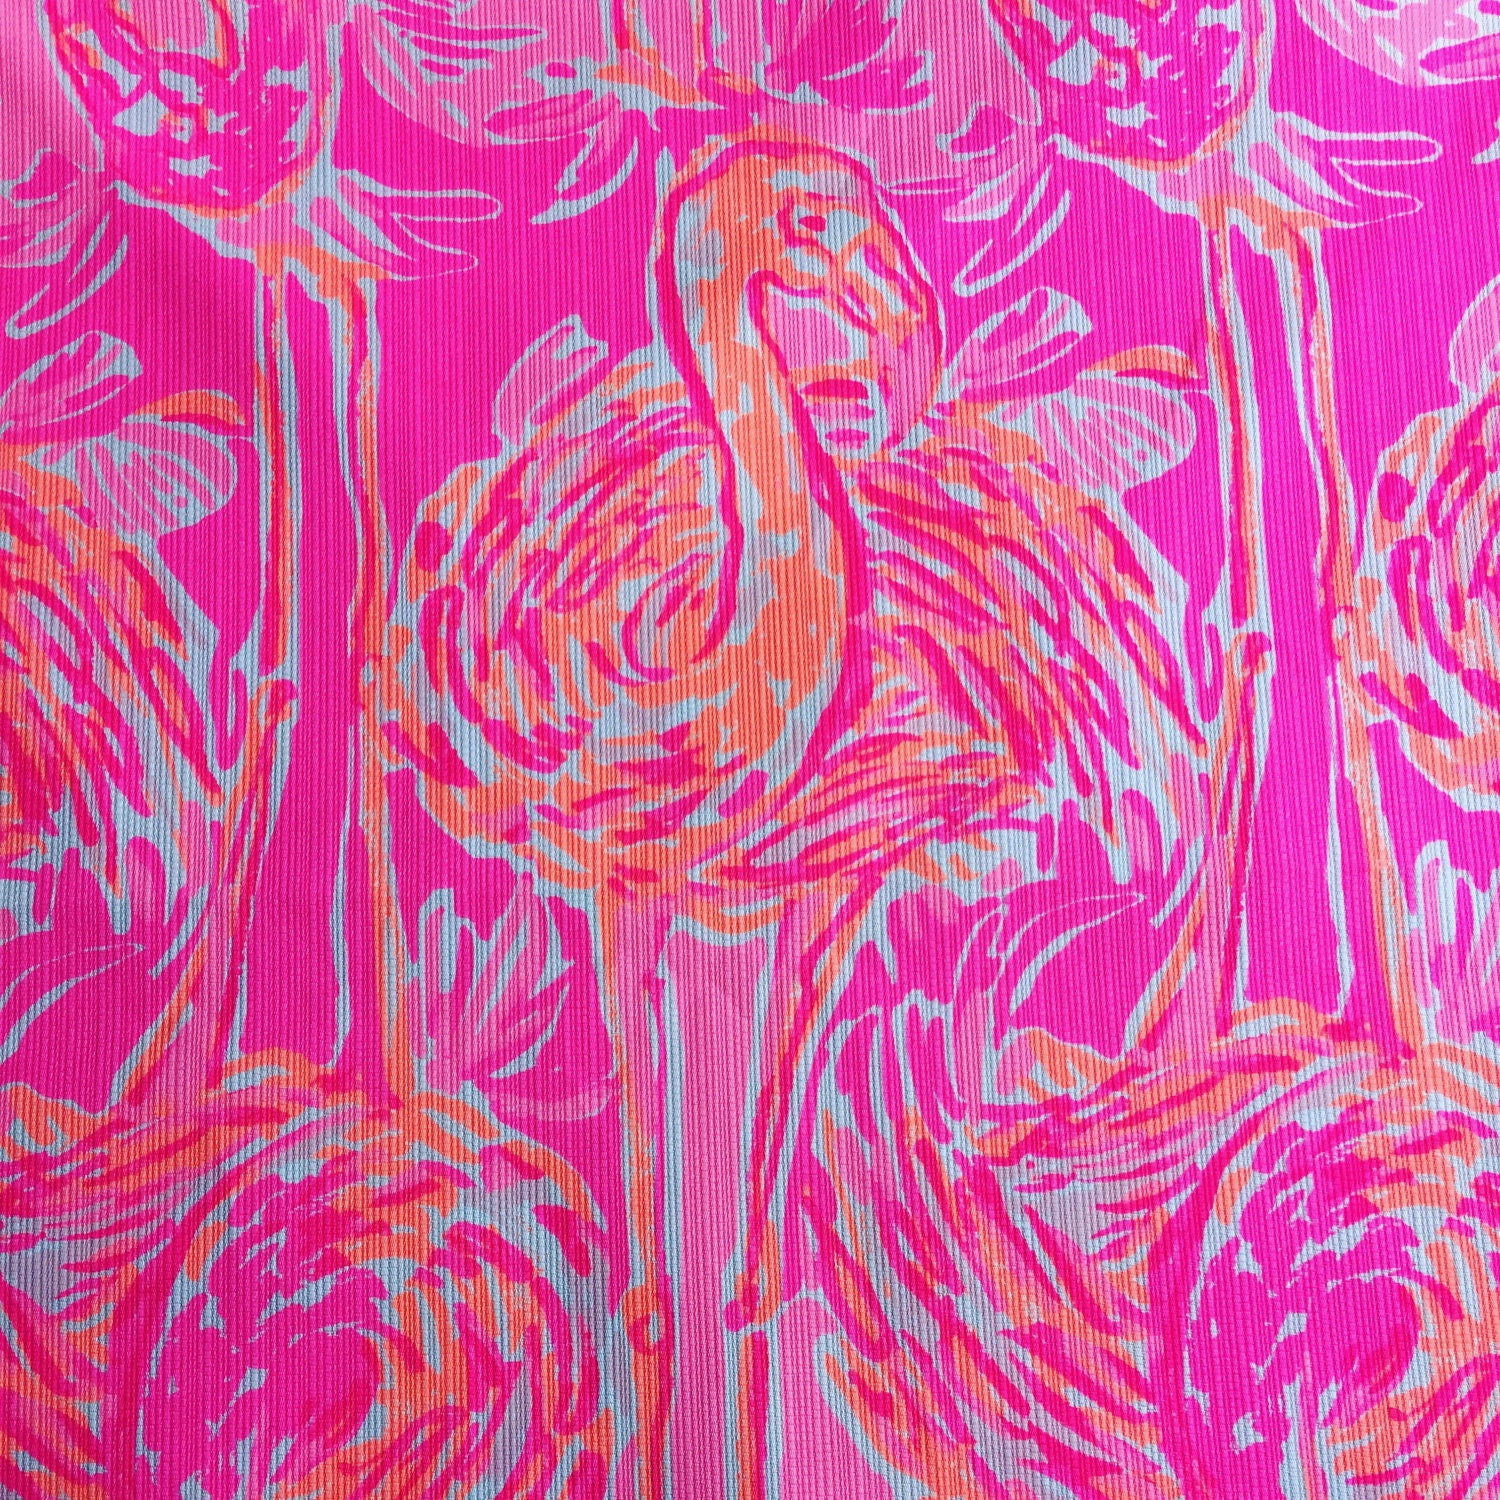 Lilly Pulitzer Fabric New 3 Patches Of Lilly Pulitzer Fabric Tappin It Back Spring